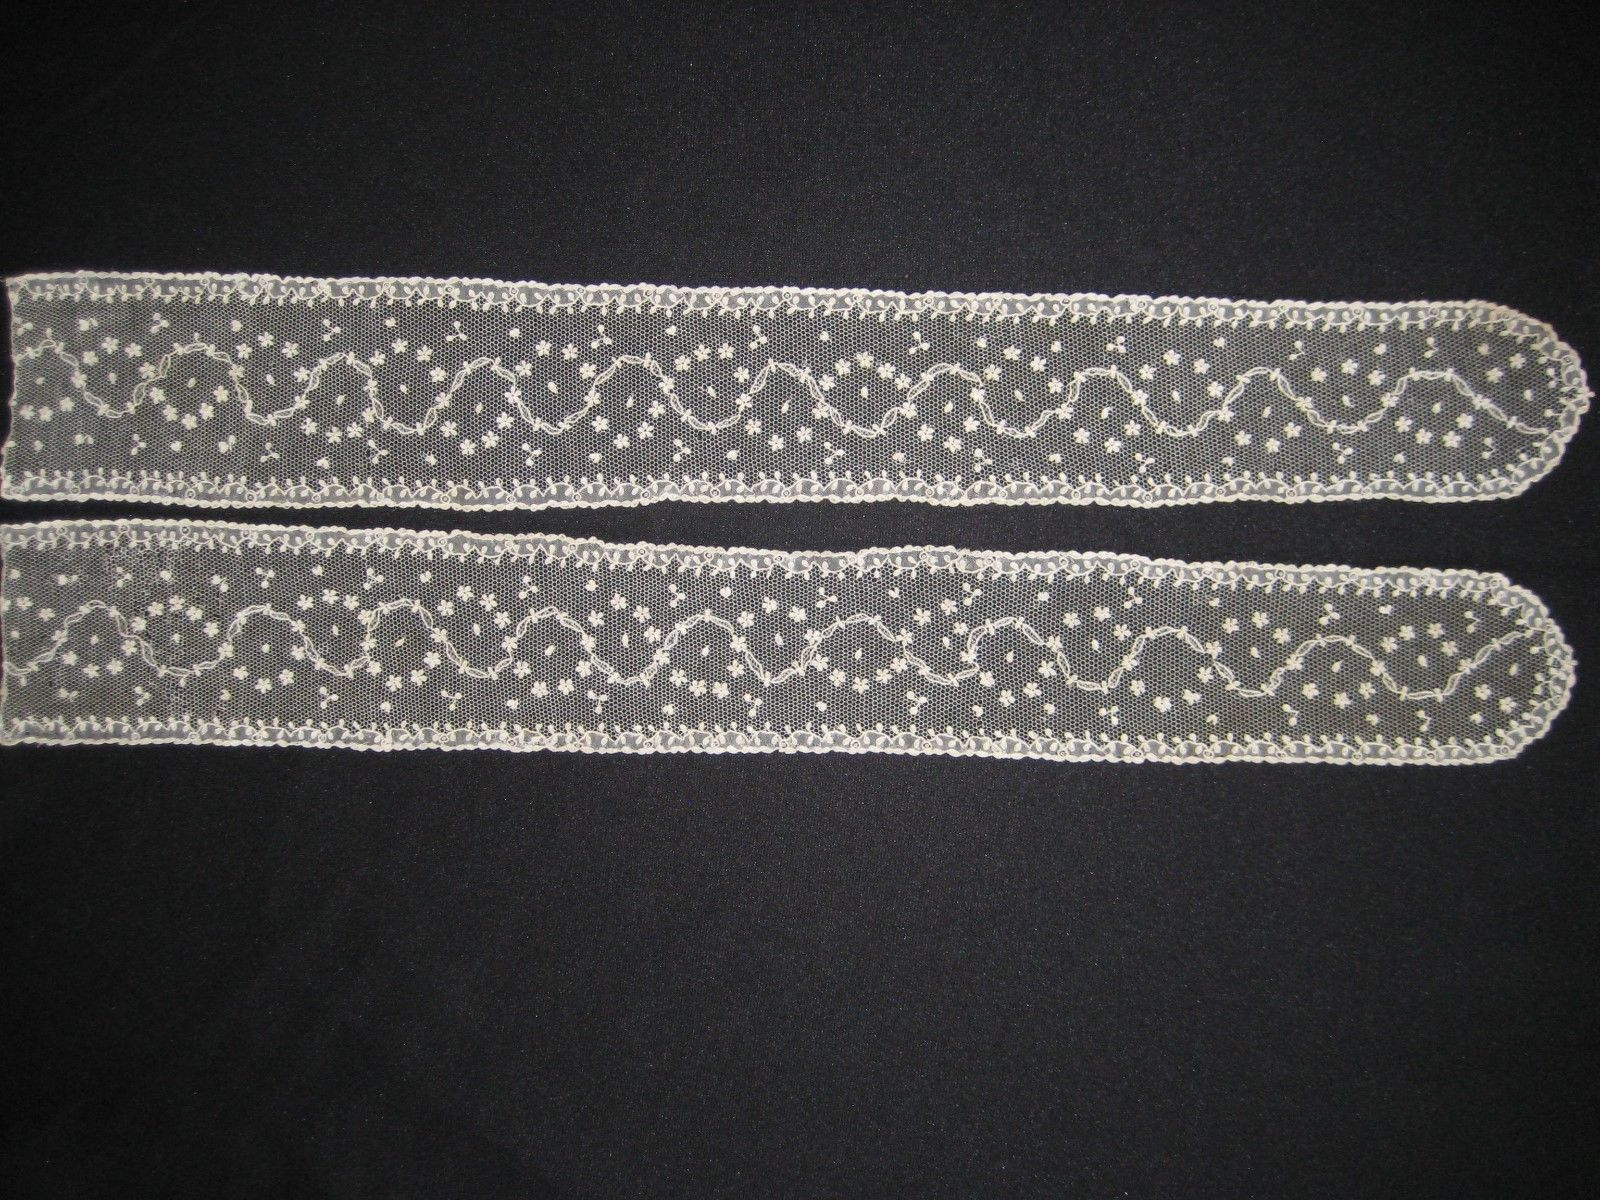 Alençon or Argentan lappets, late 18th c, from the 6/12/2016 Ebay Alerts.